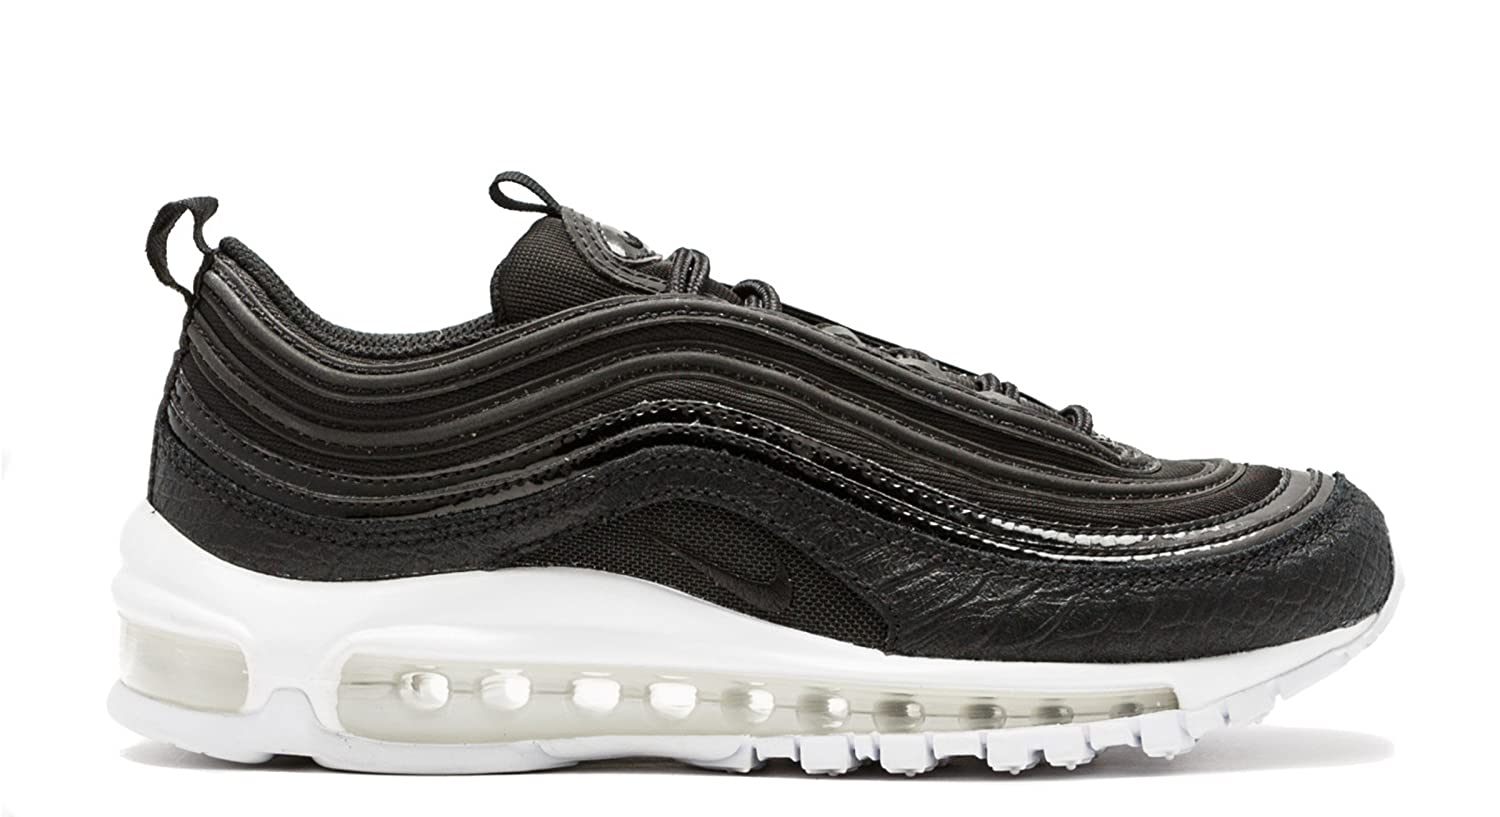 new styles 43662 ae0d0 Amazon.com   Nike Air Max 97 Premium Women (9.5) Black White   Track    Field   Cross Country